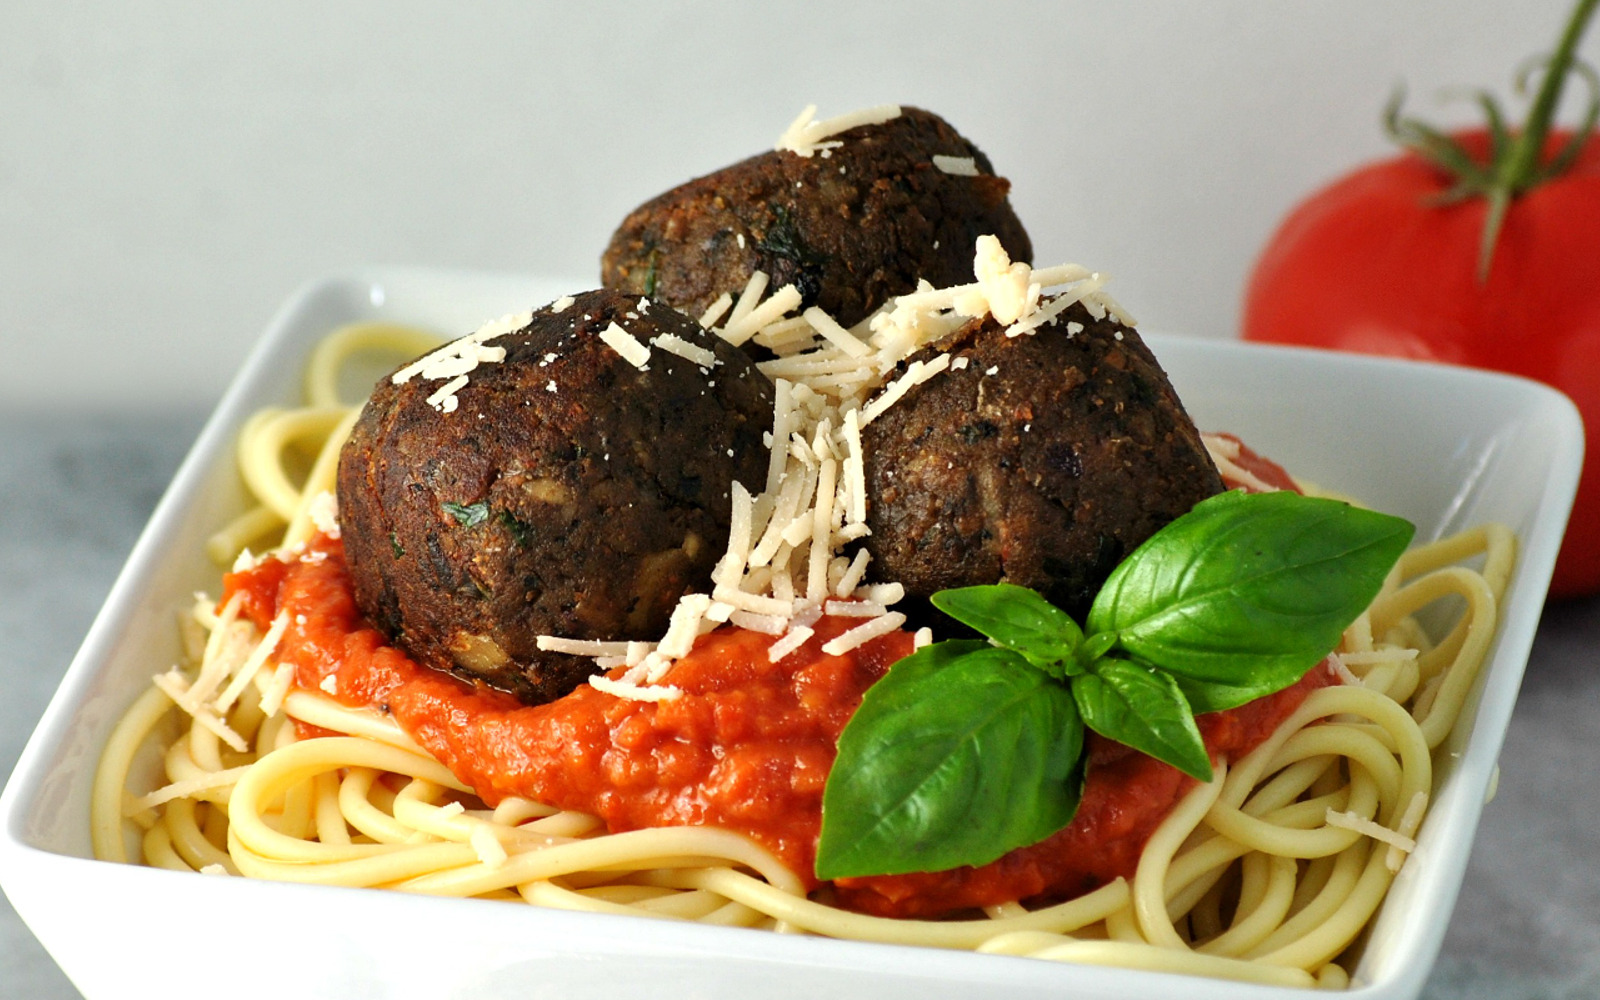 Pesto, Mushroom, and White Bean Meatballs